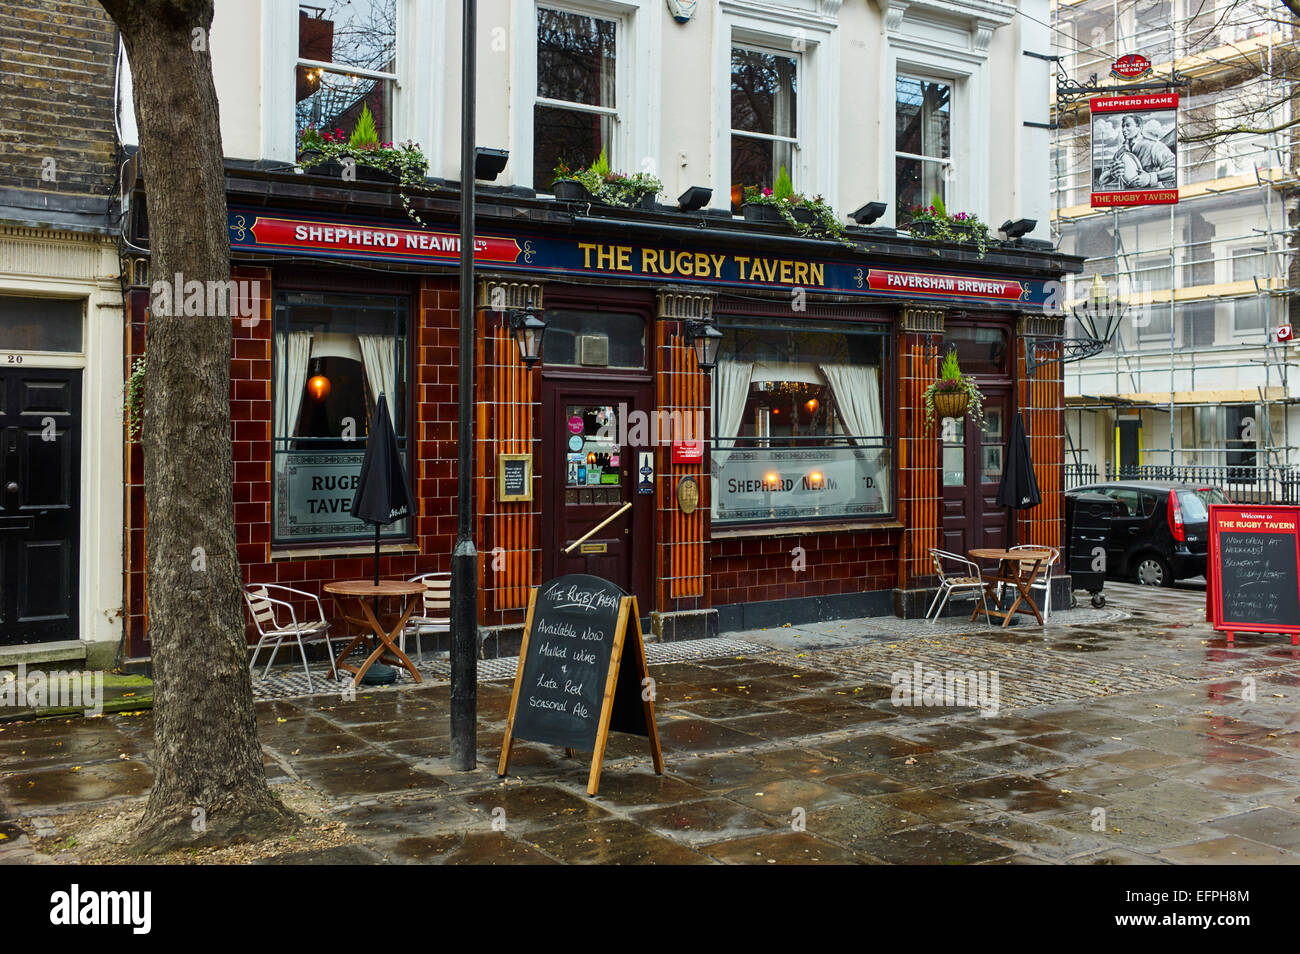 The Rugby Tavern, Bloomsbury - Stock Image